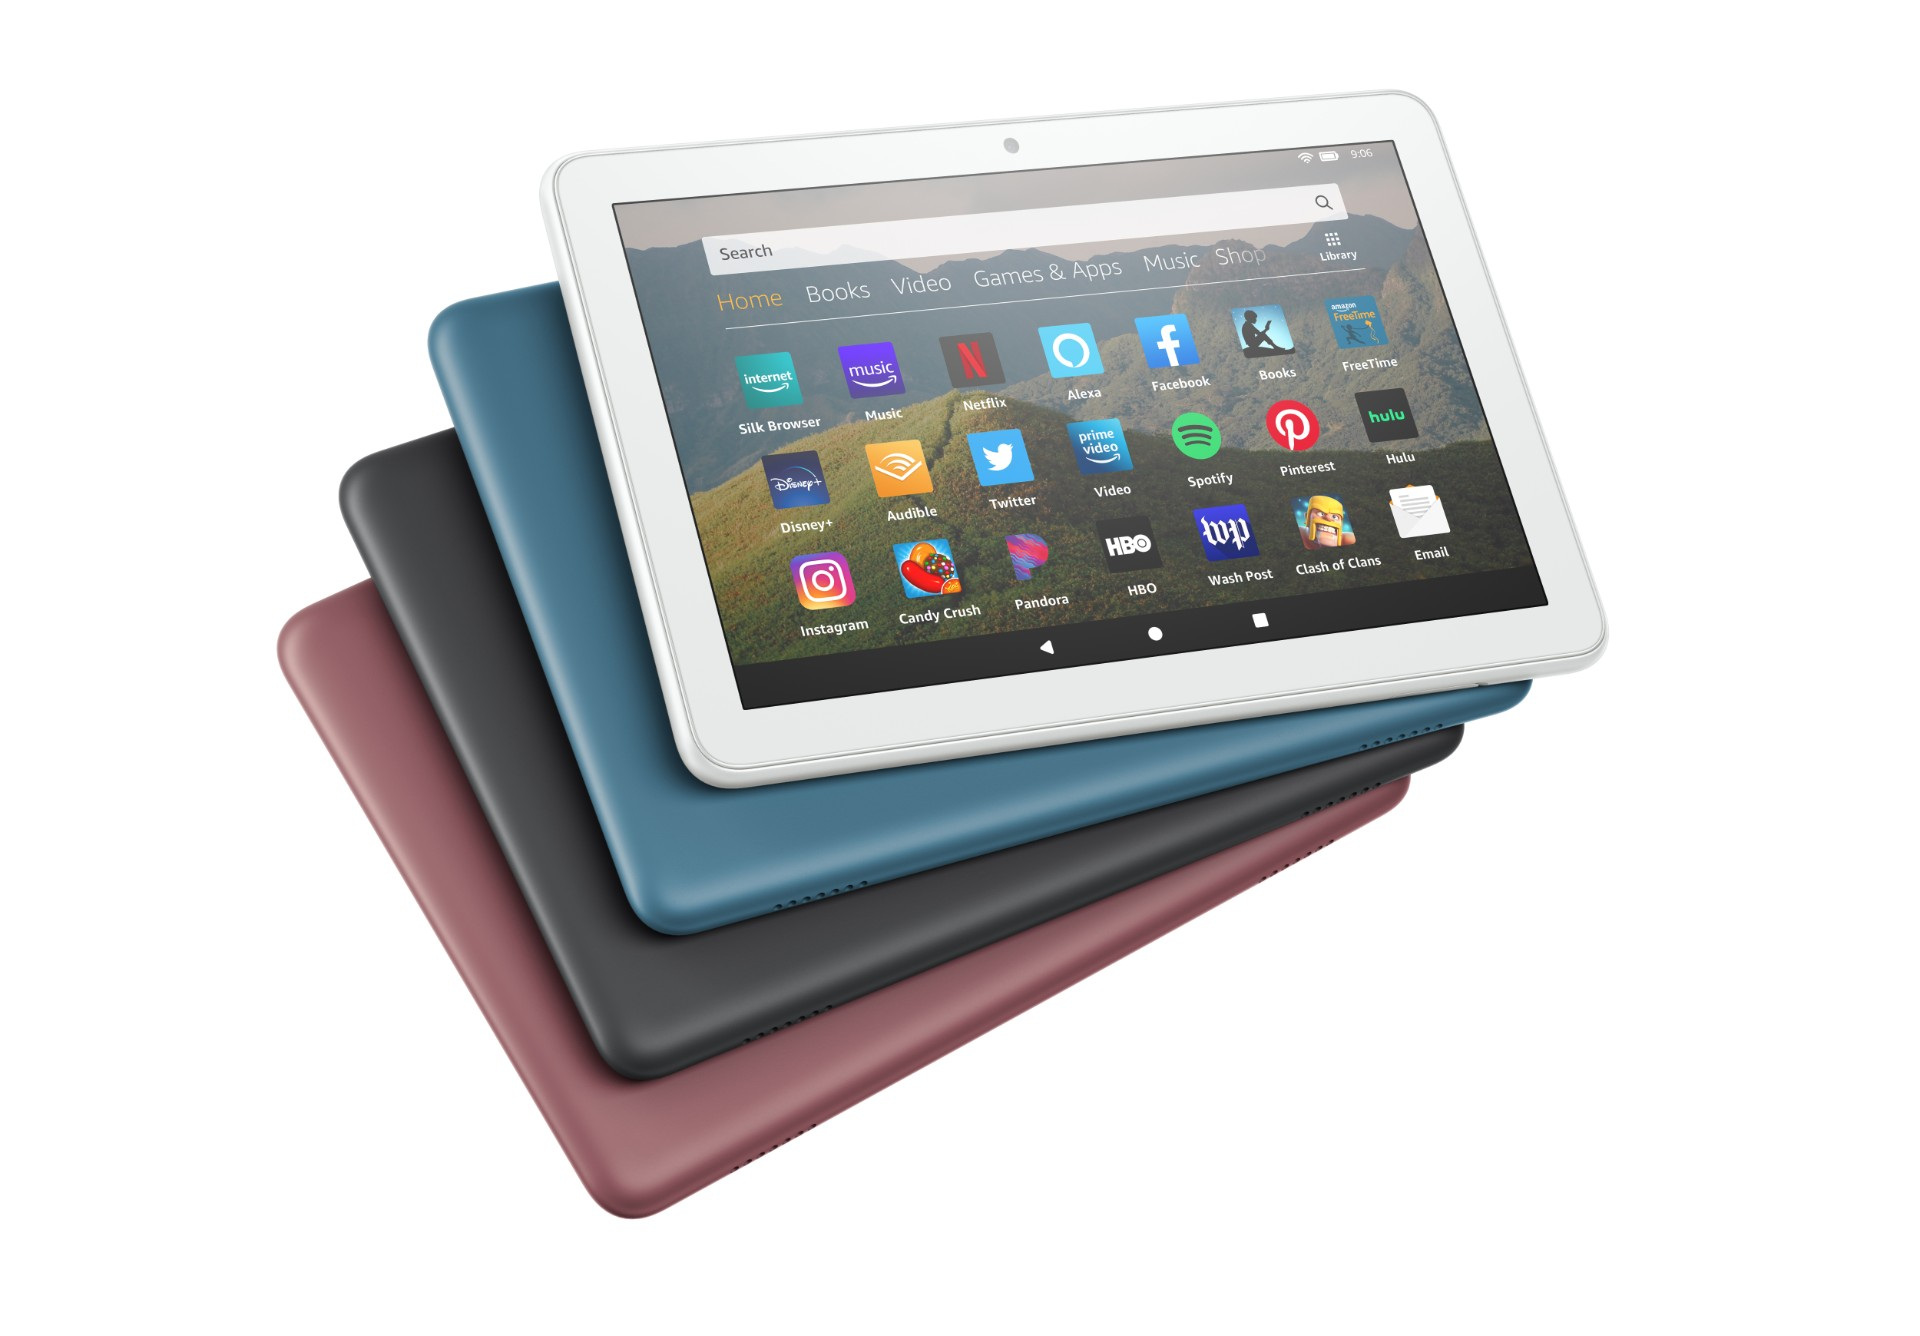 Fire HD 8 available colors